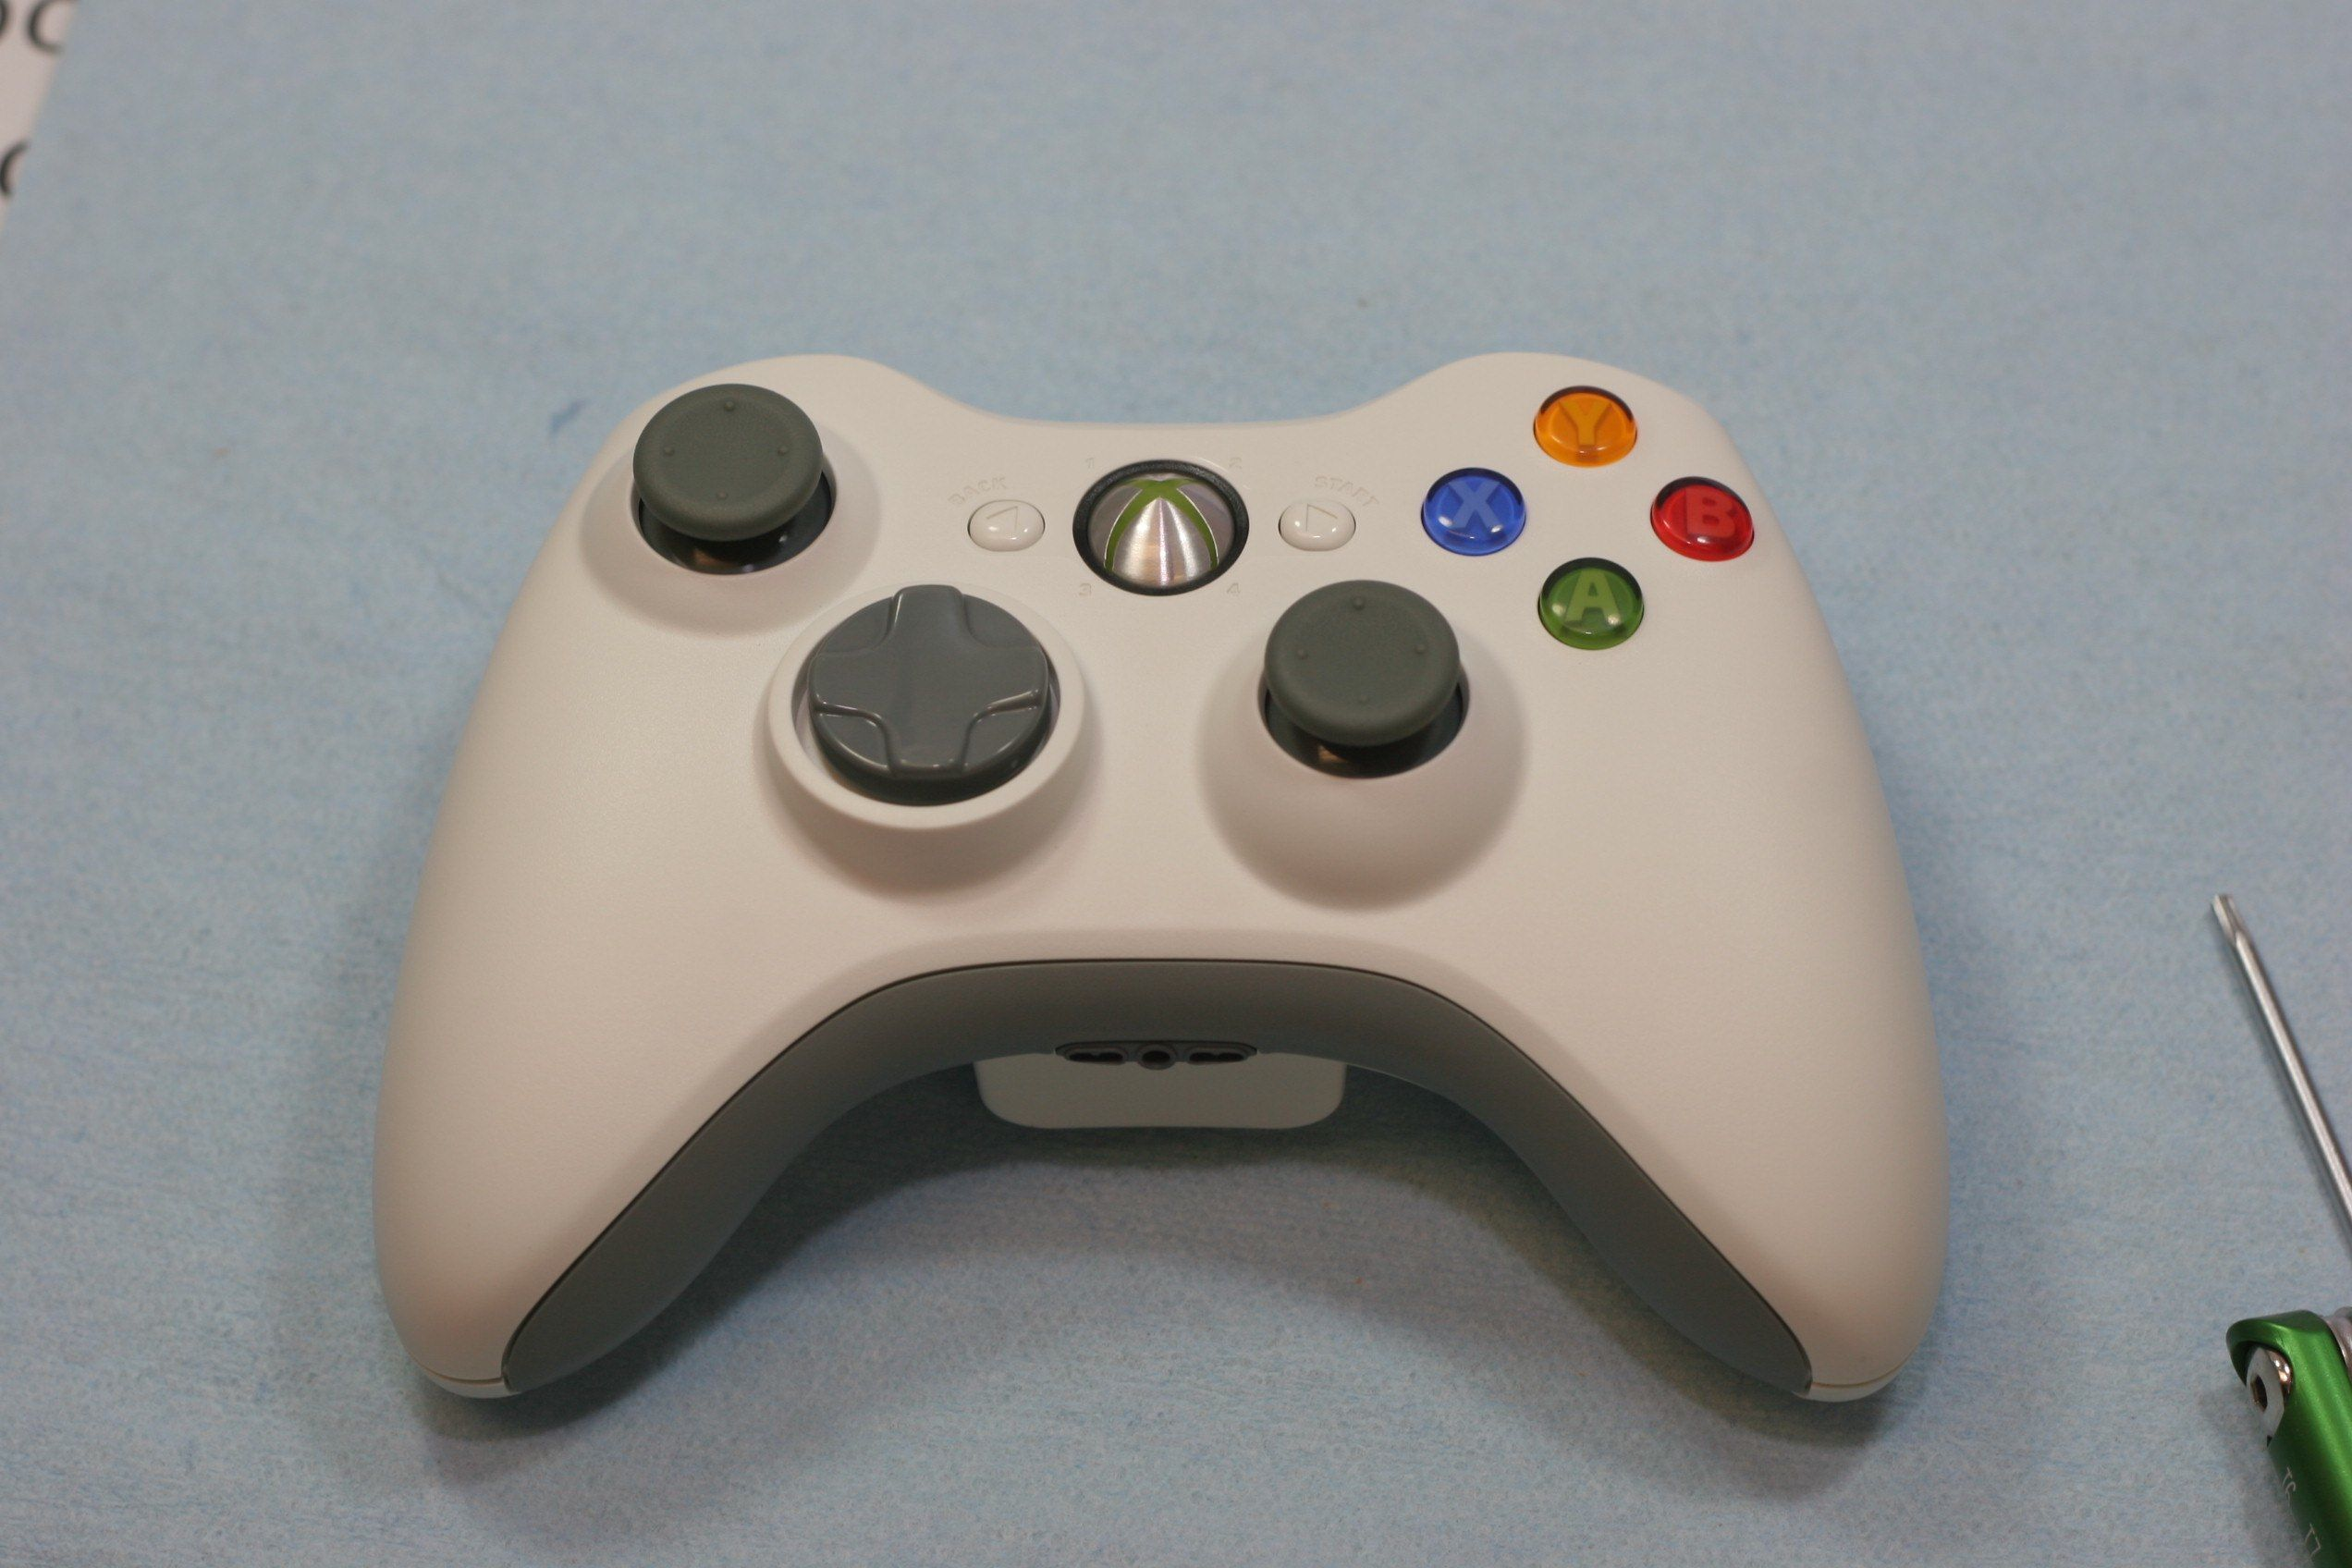 How To Disassemble an Xbox 360 Wireless Controller